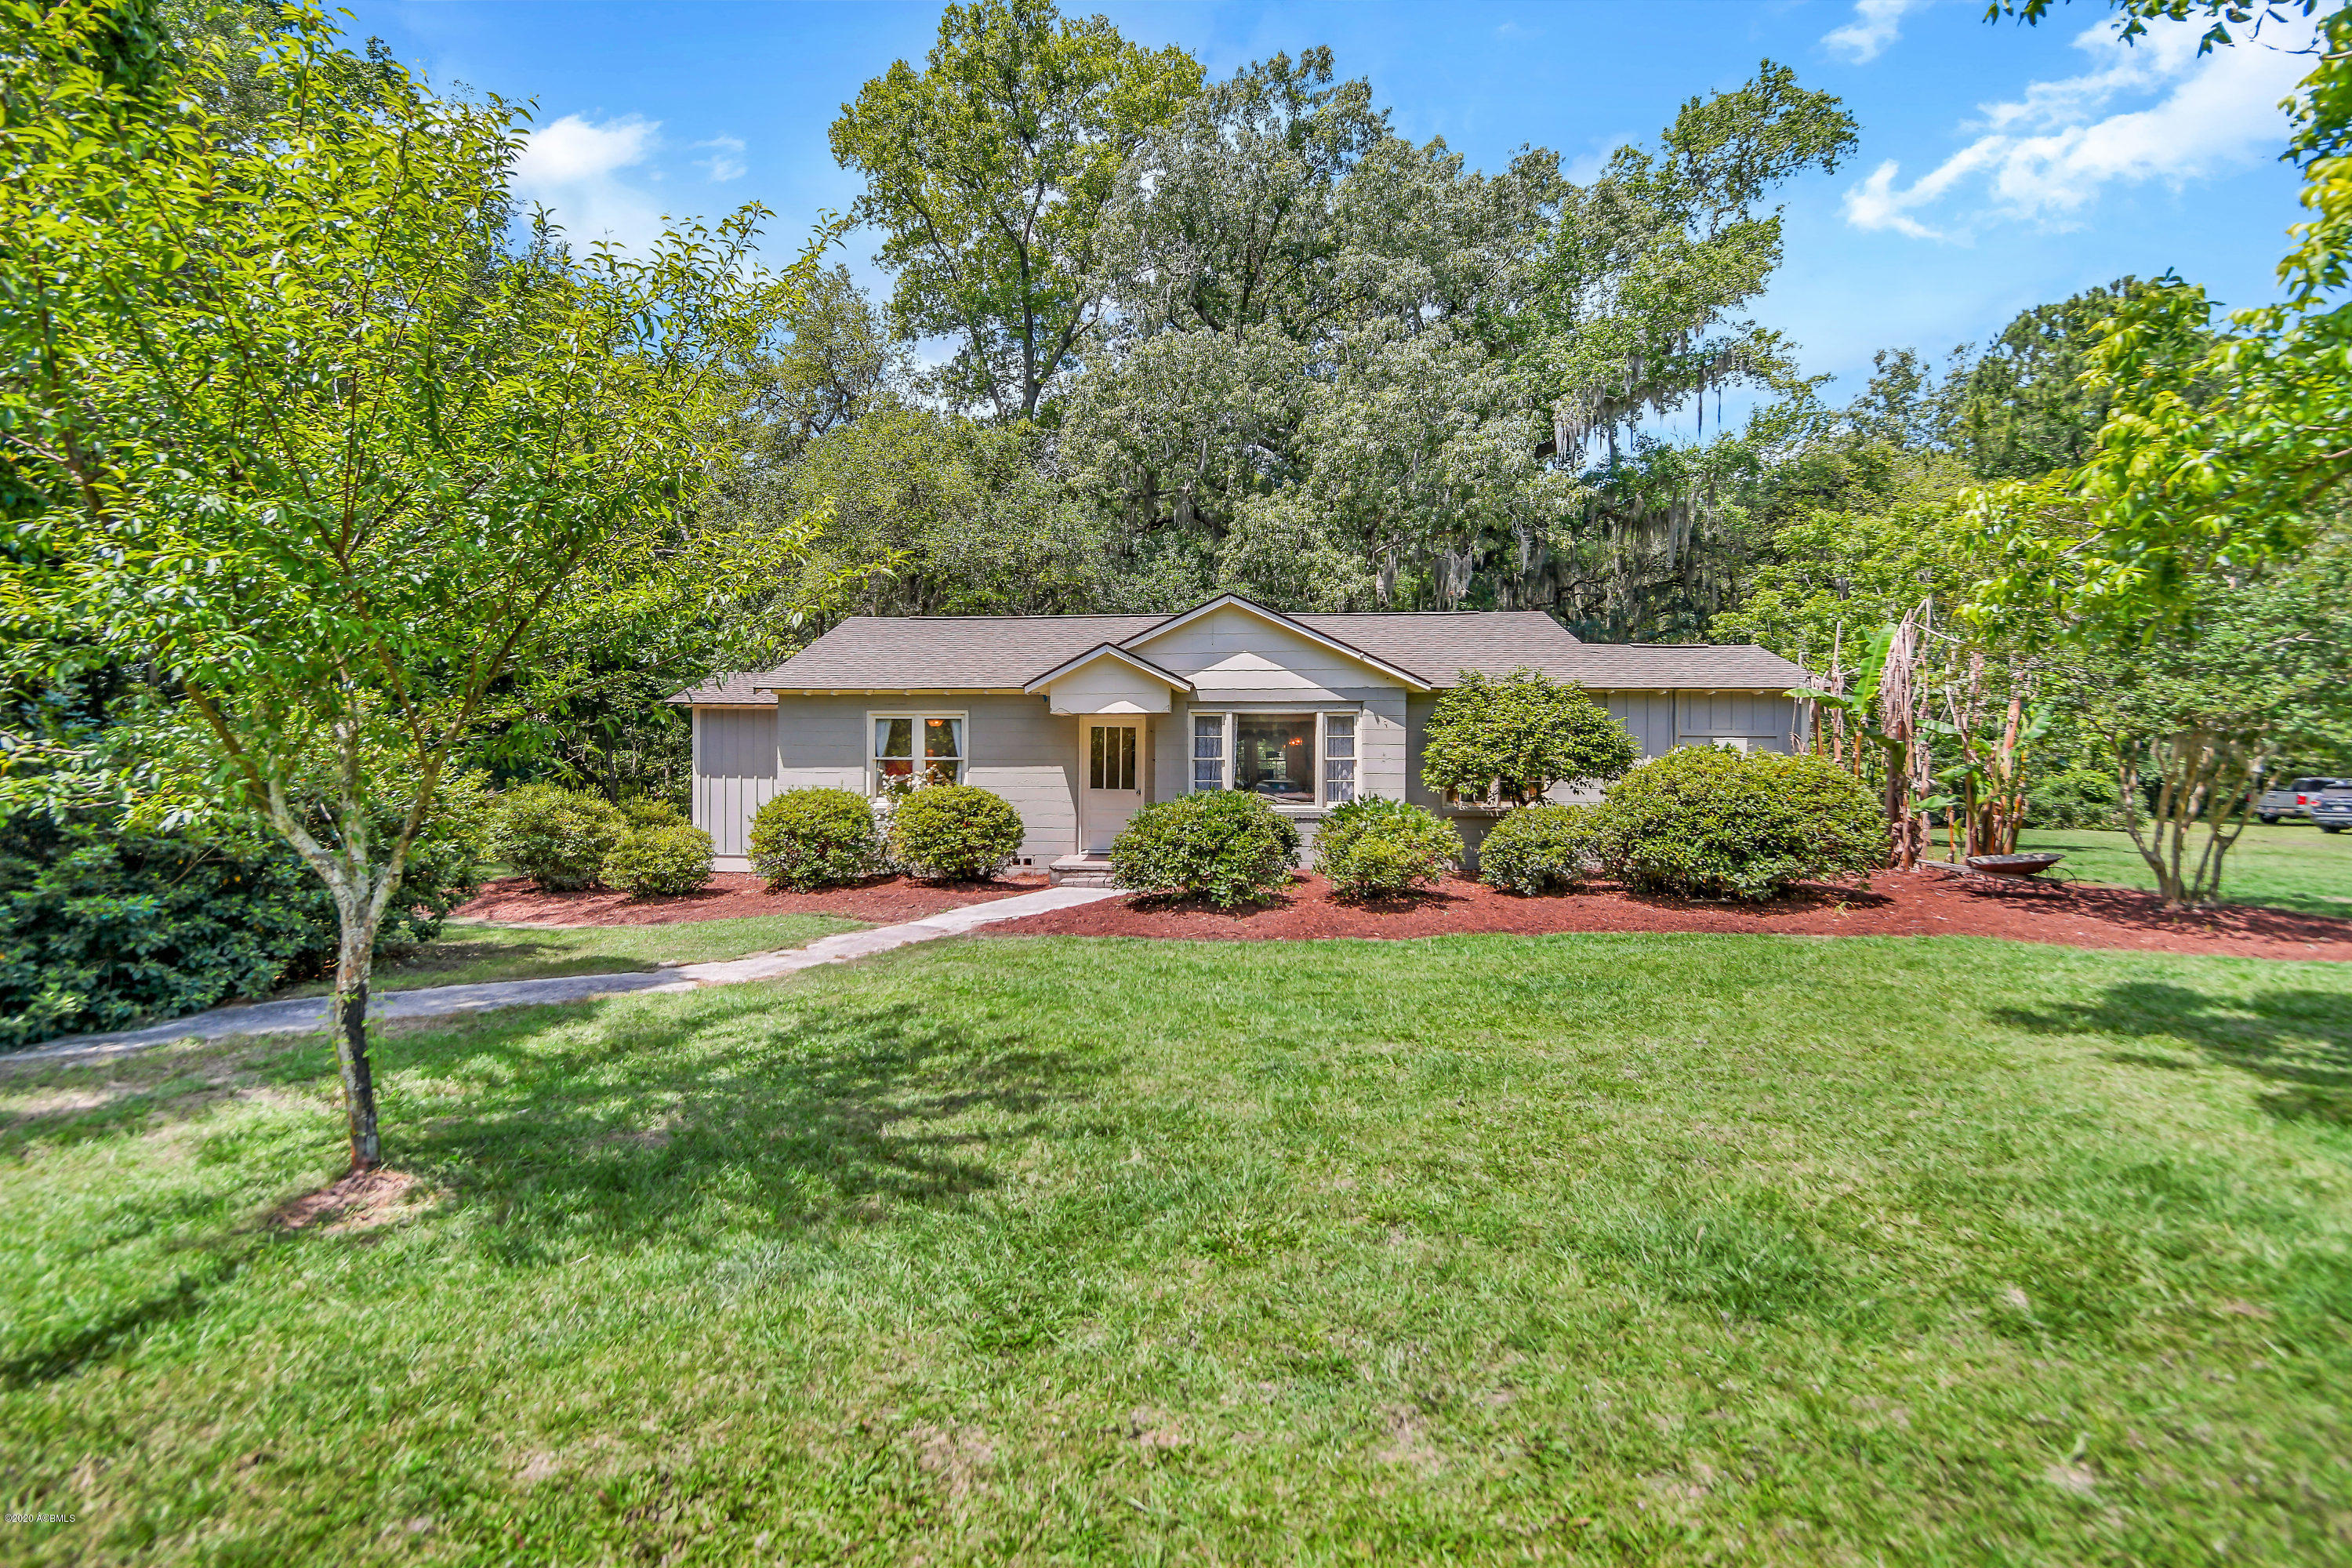 Photo of 164 Paige Point, Seabrook, SC 29940